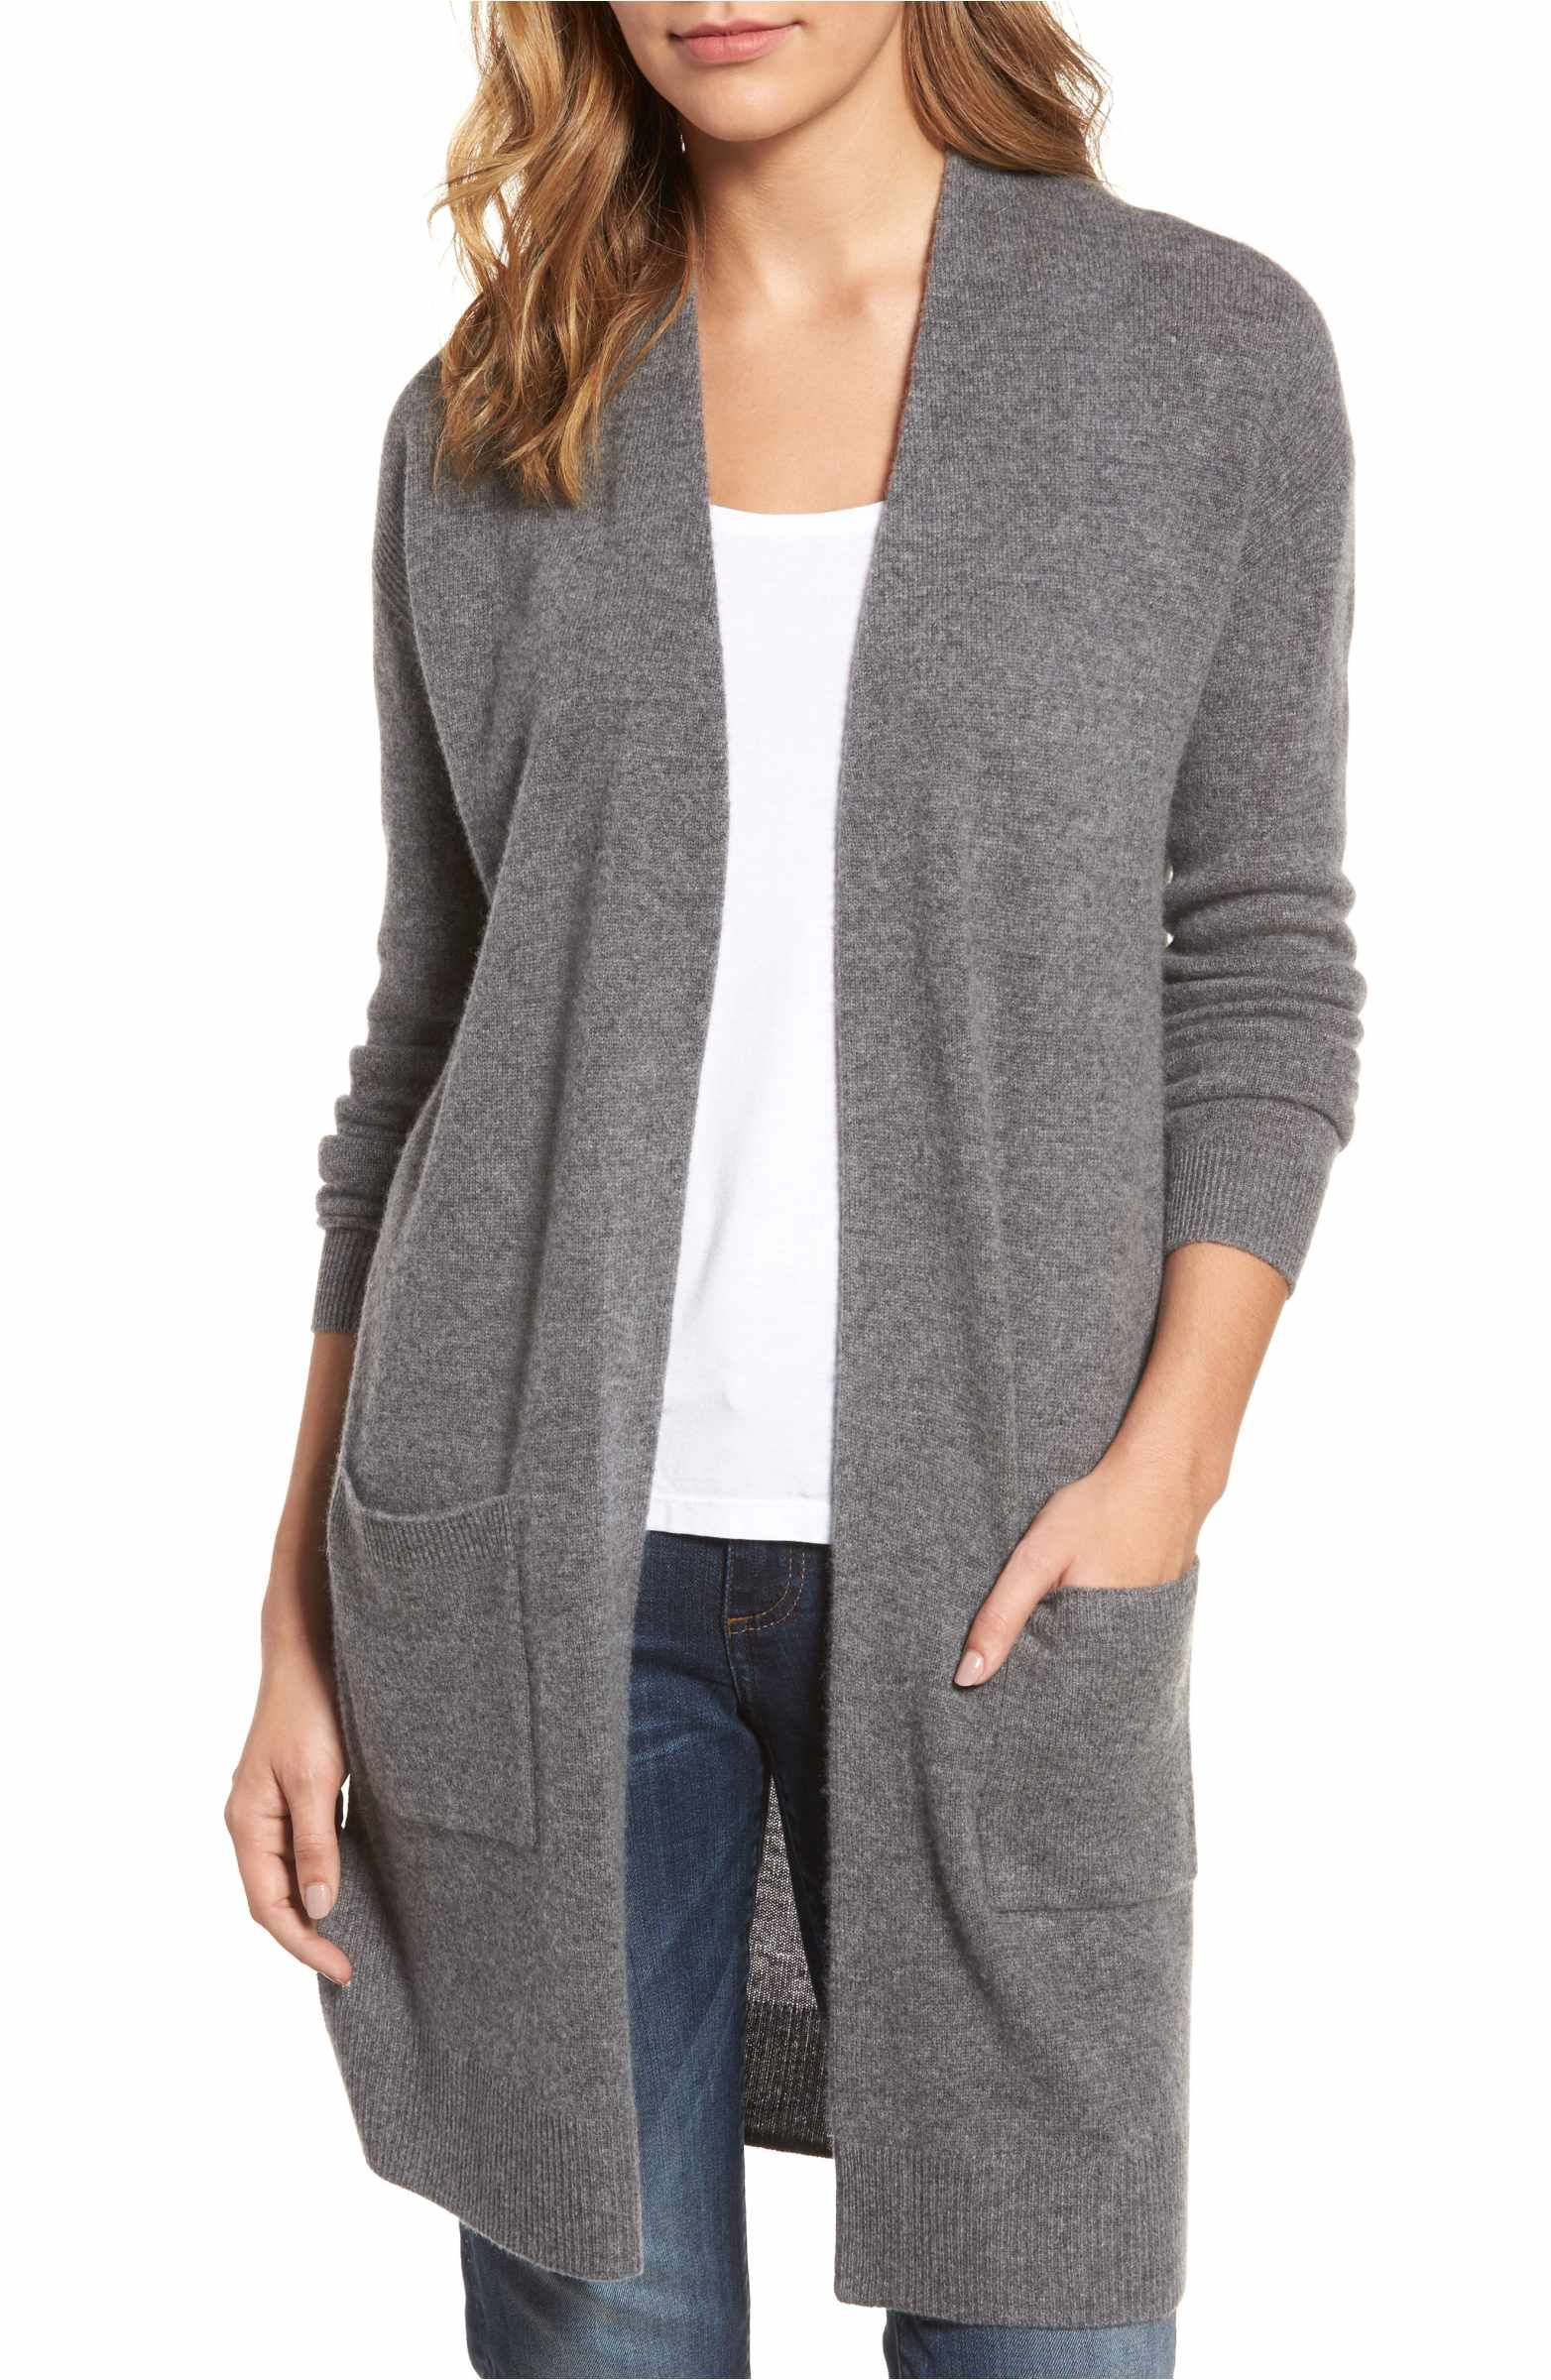 Rib Knit Wool & Cashmere Cardigan | Rib knit, Cashmere and Clothes